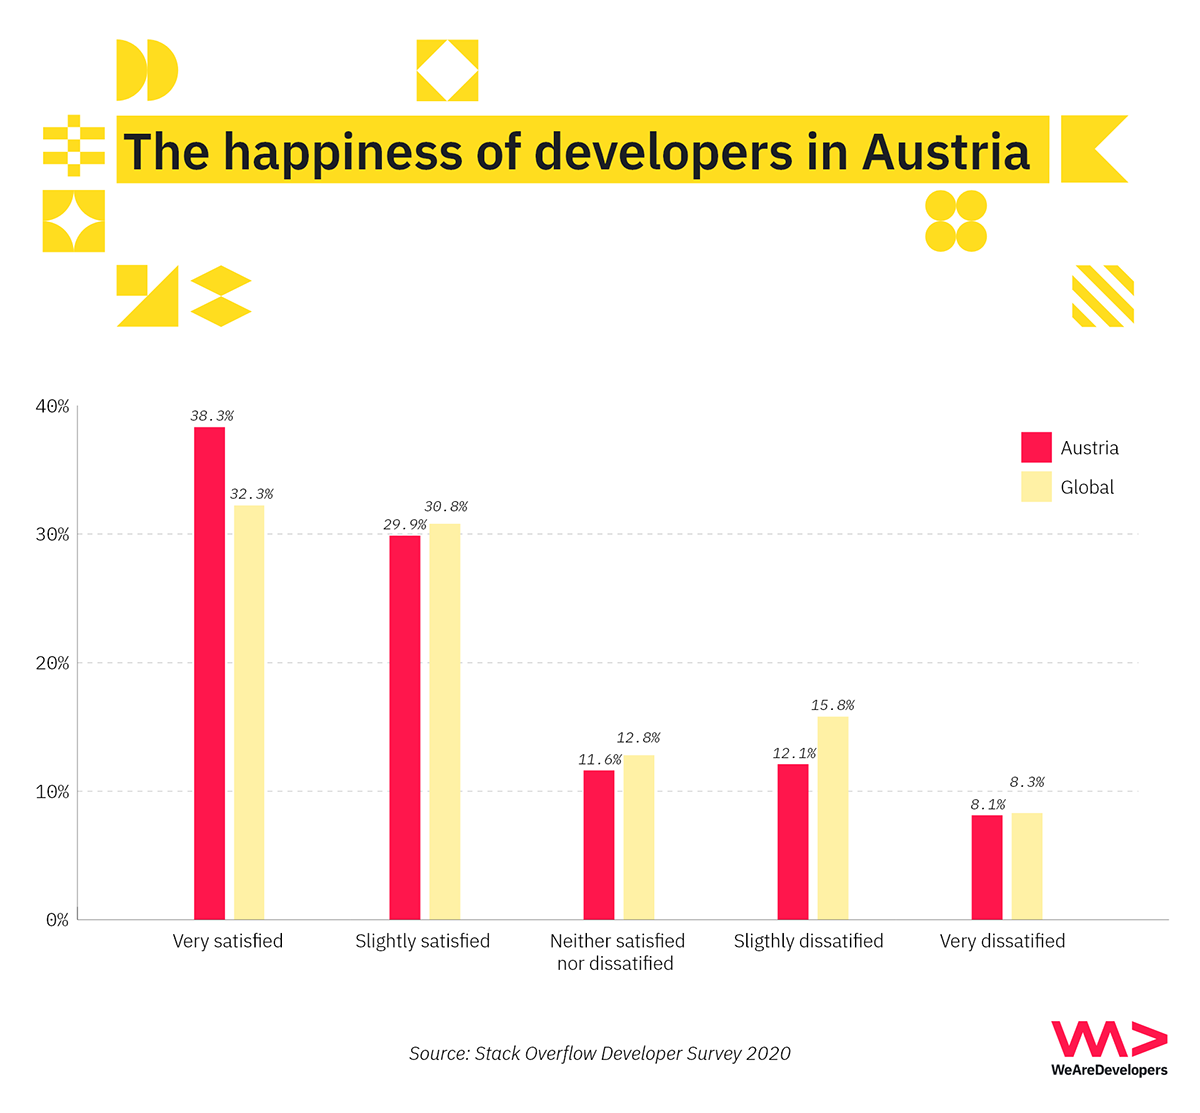 The happiness of software developers in Austria